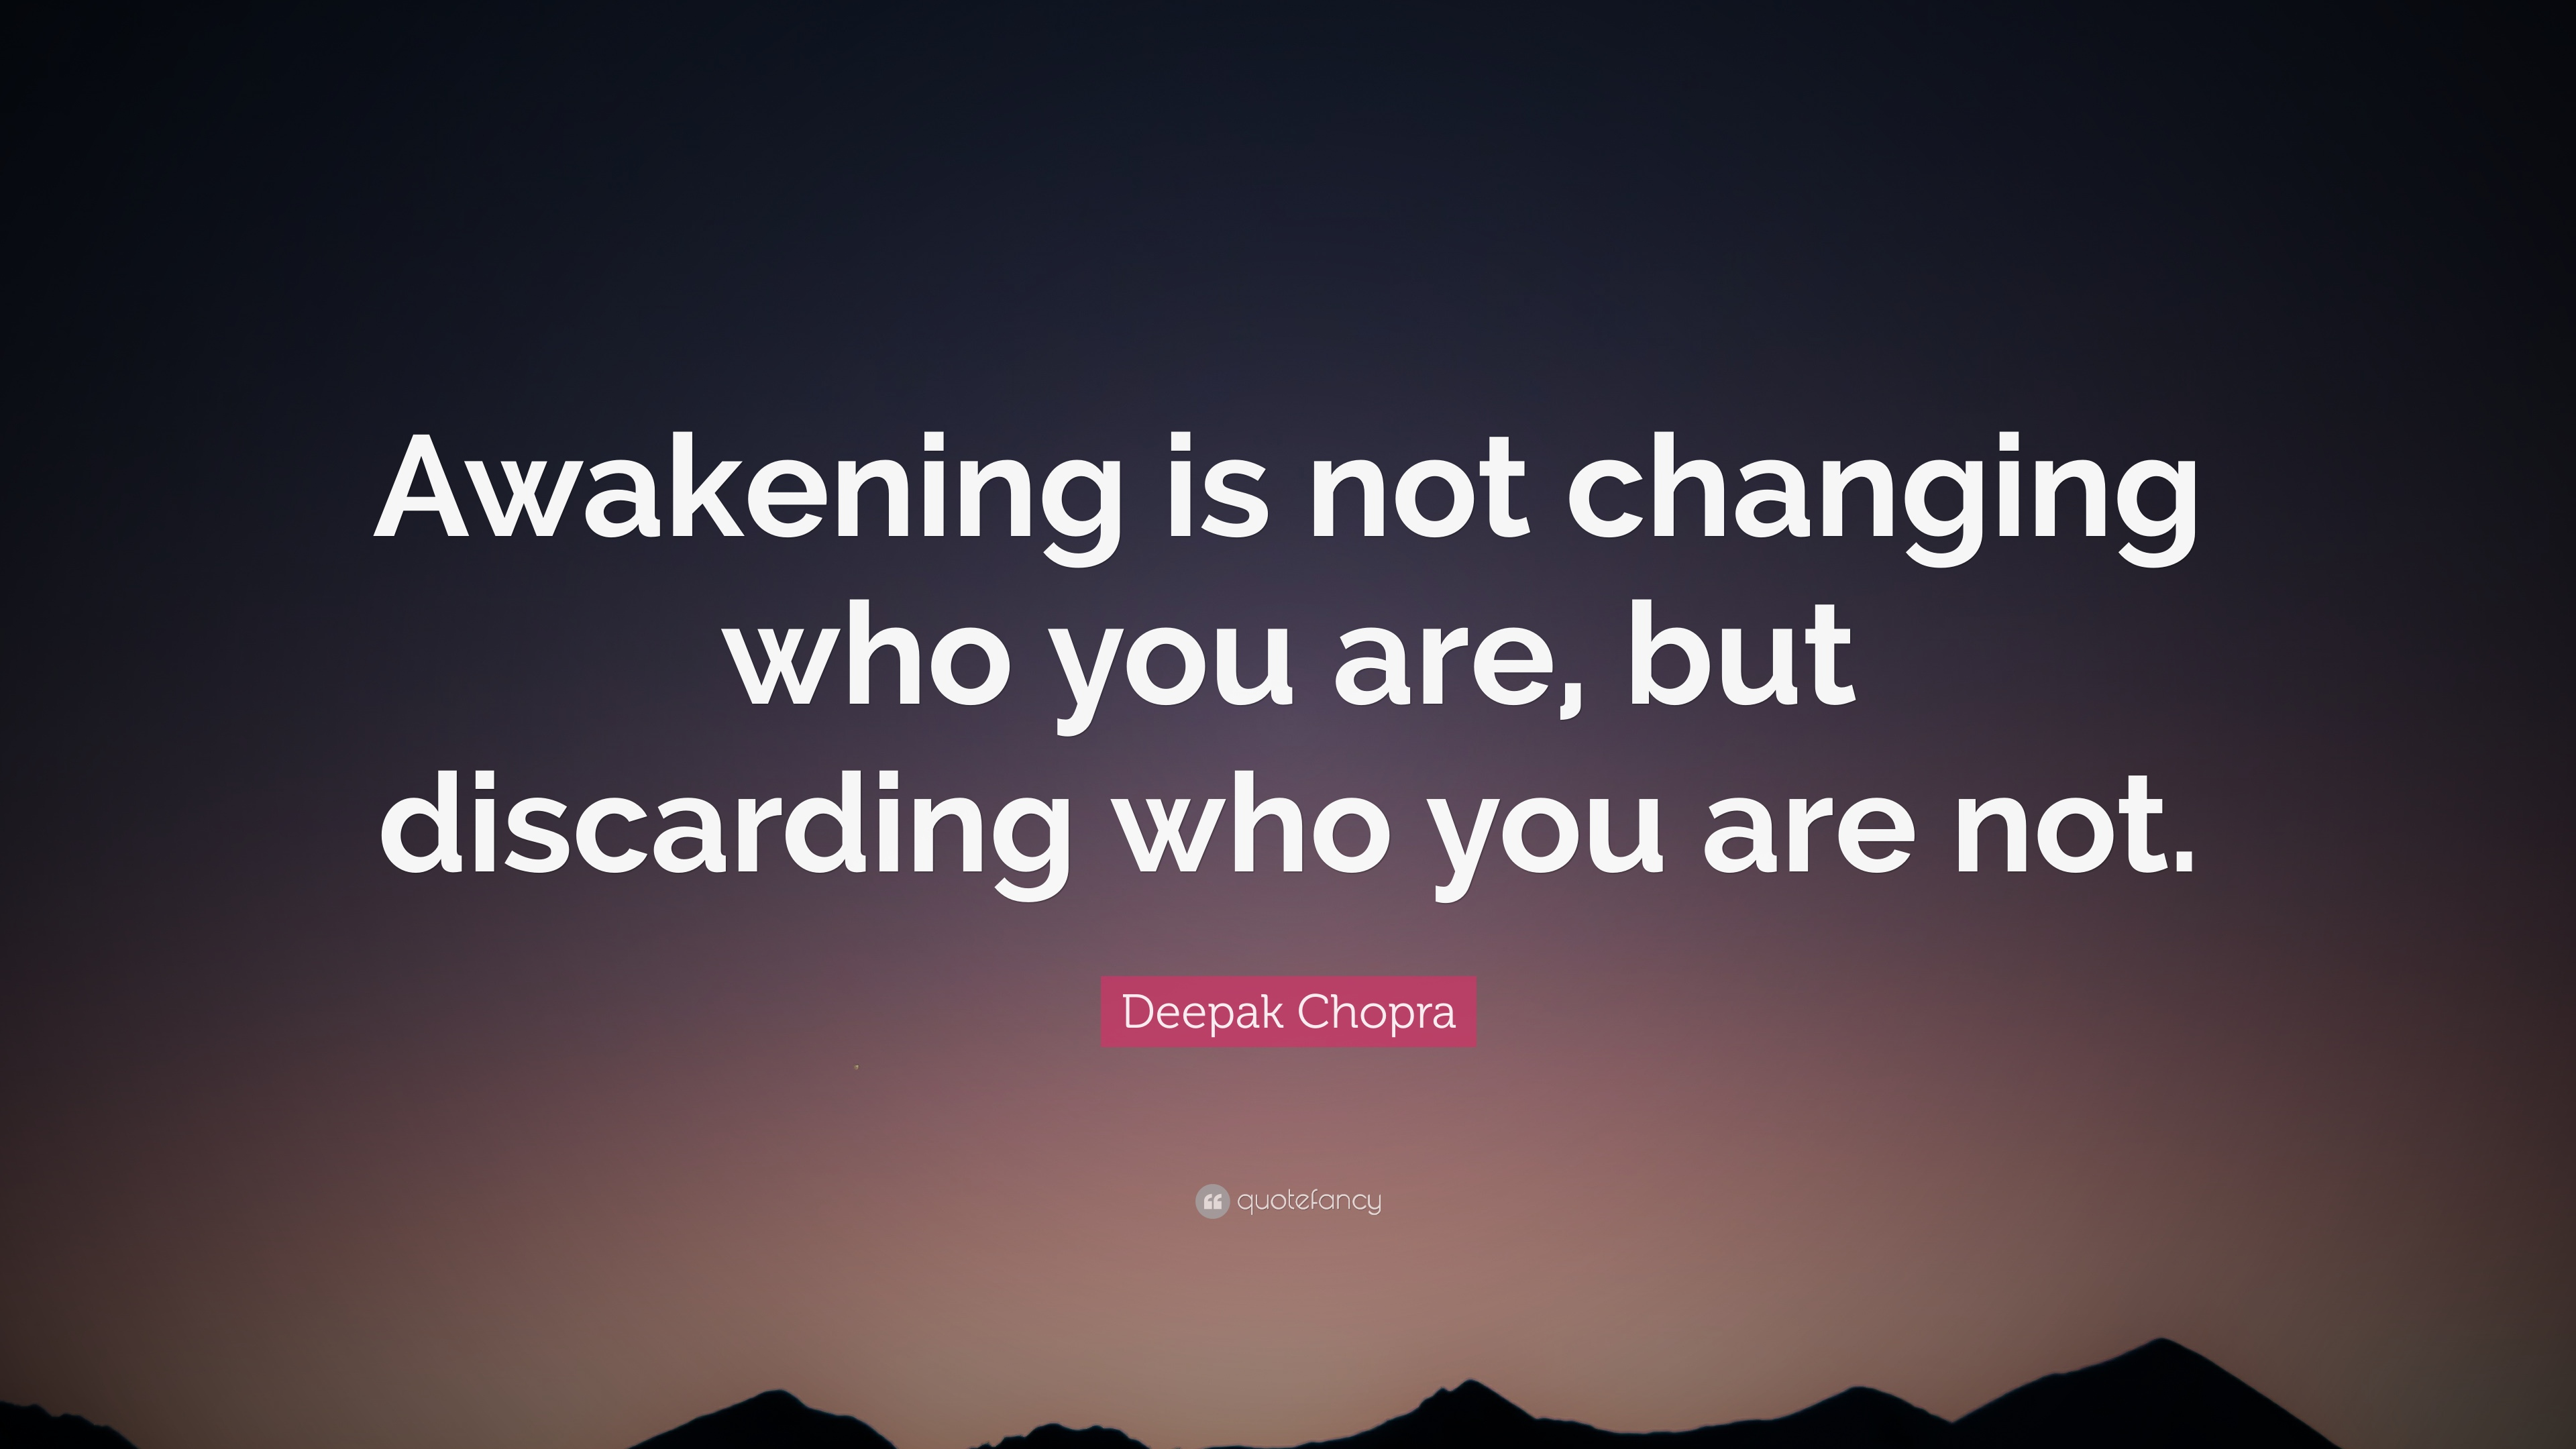 deepak chopra quote awakening is not changing who you are but